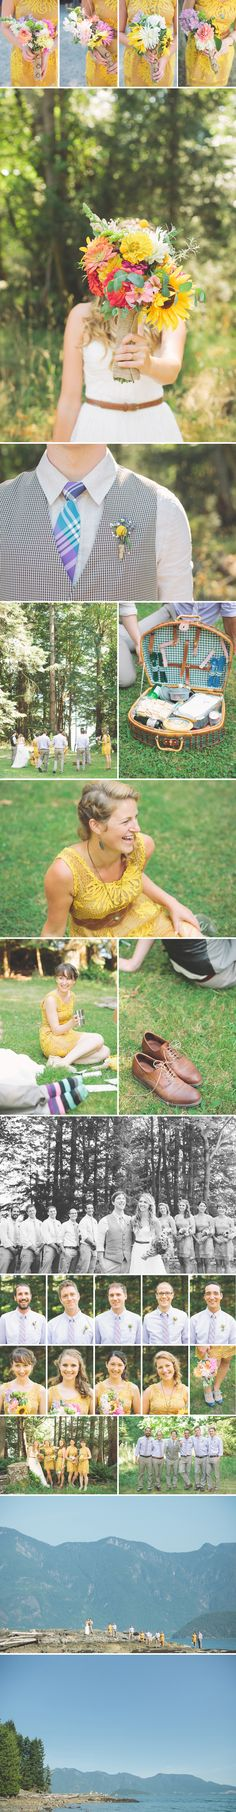 bridesmaid shot - less formal, nice to have the photos of each members of the bridal party but better if they were more candid (not all looking at the camera)